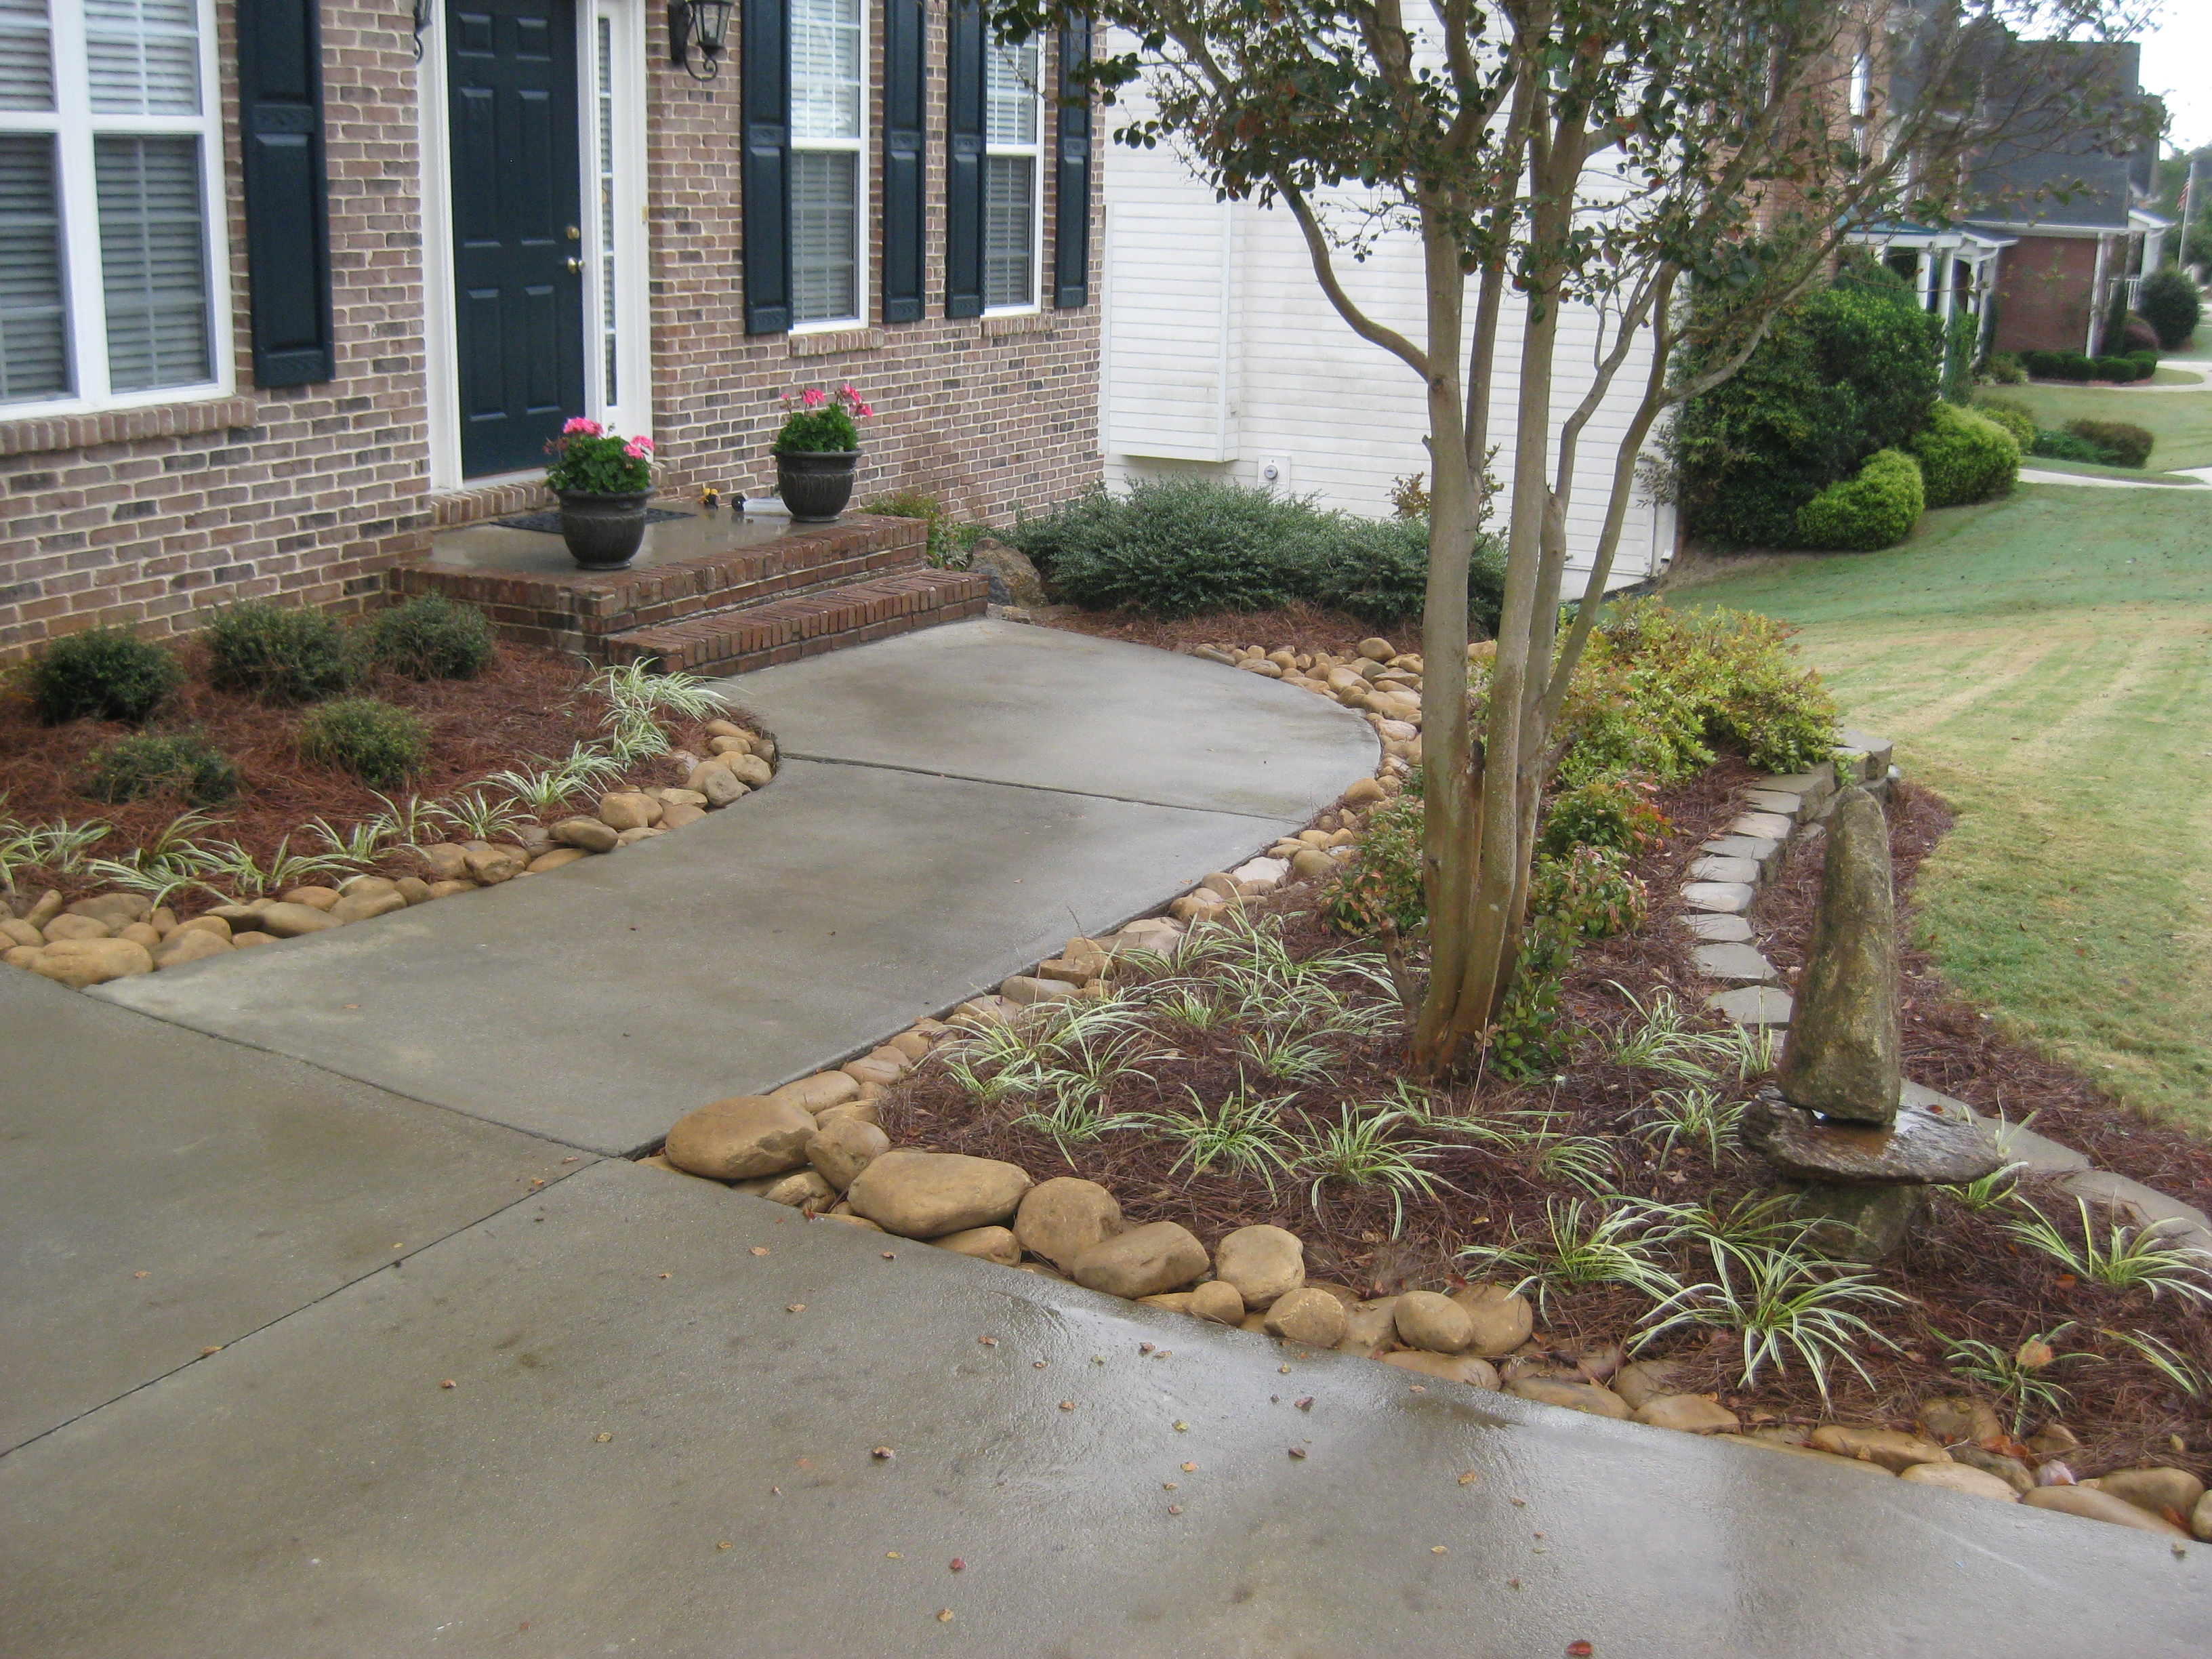 landscaping for water drainage drainage pond water drainage solutions landscaping mcplants mcplants